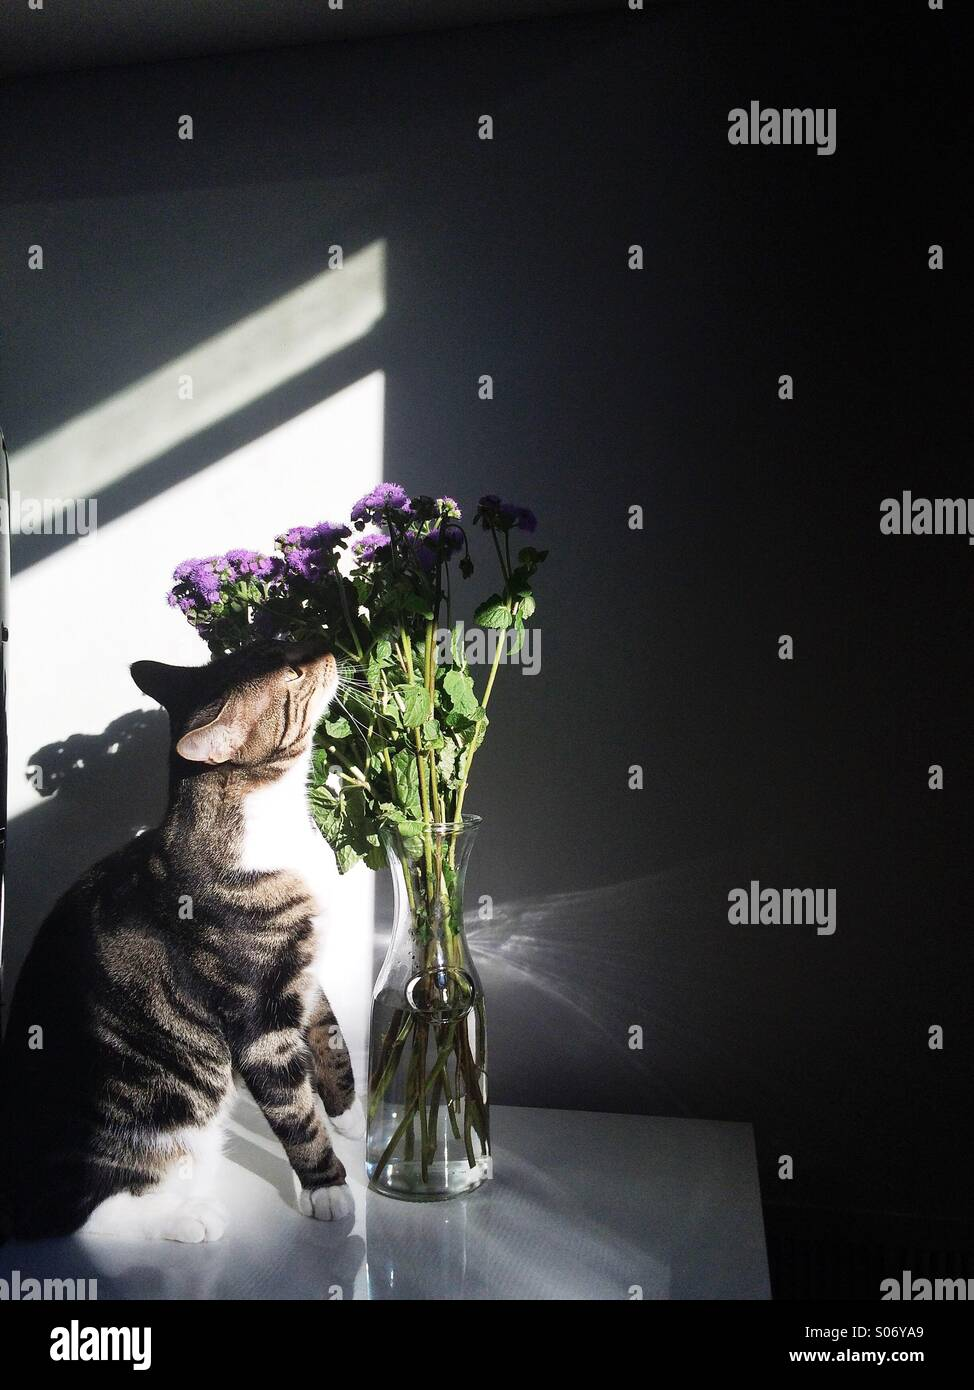 stop and smell the flowers - Stock Image